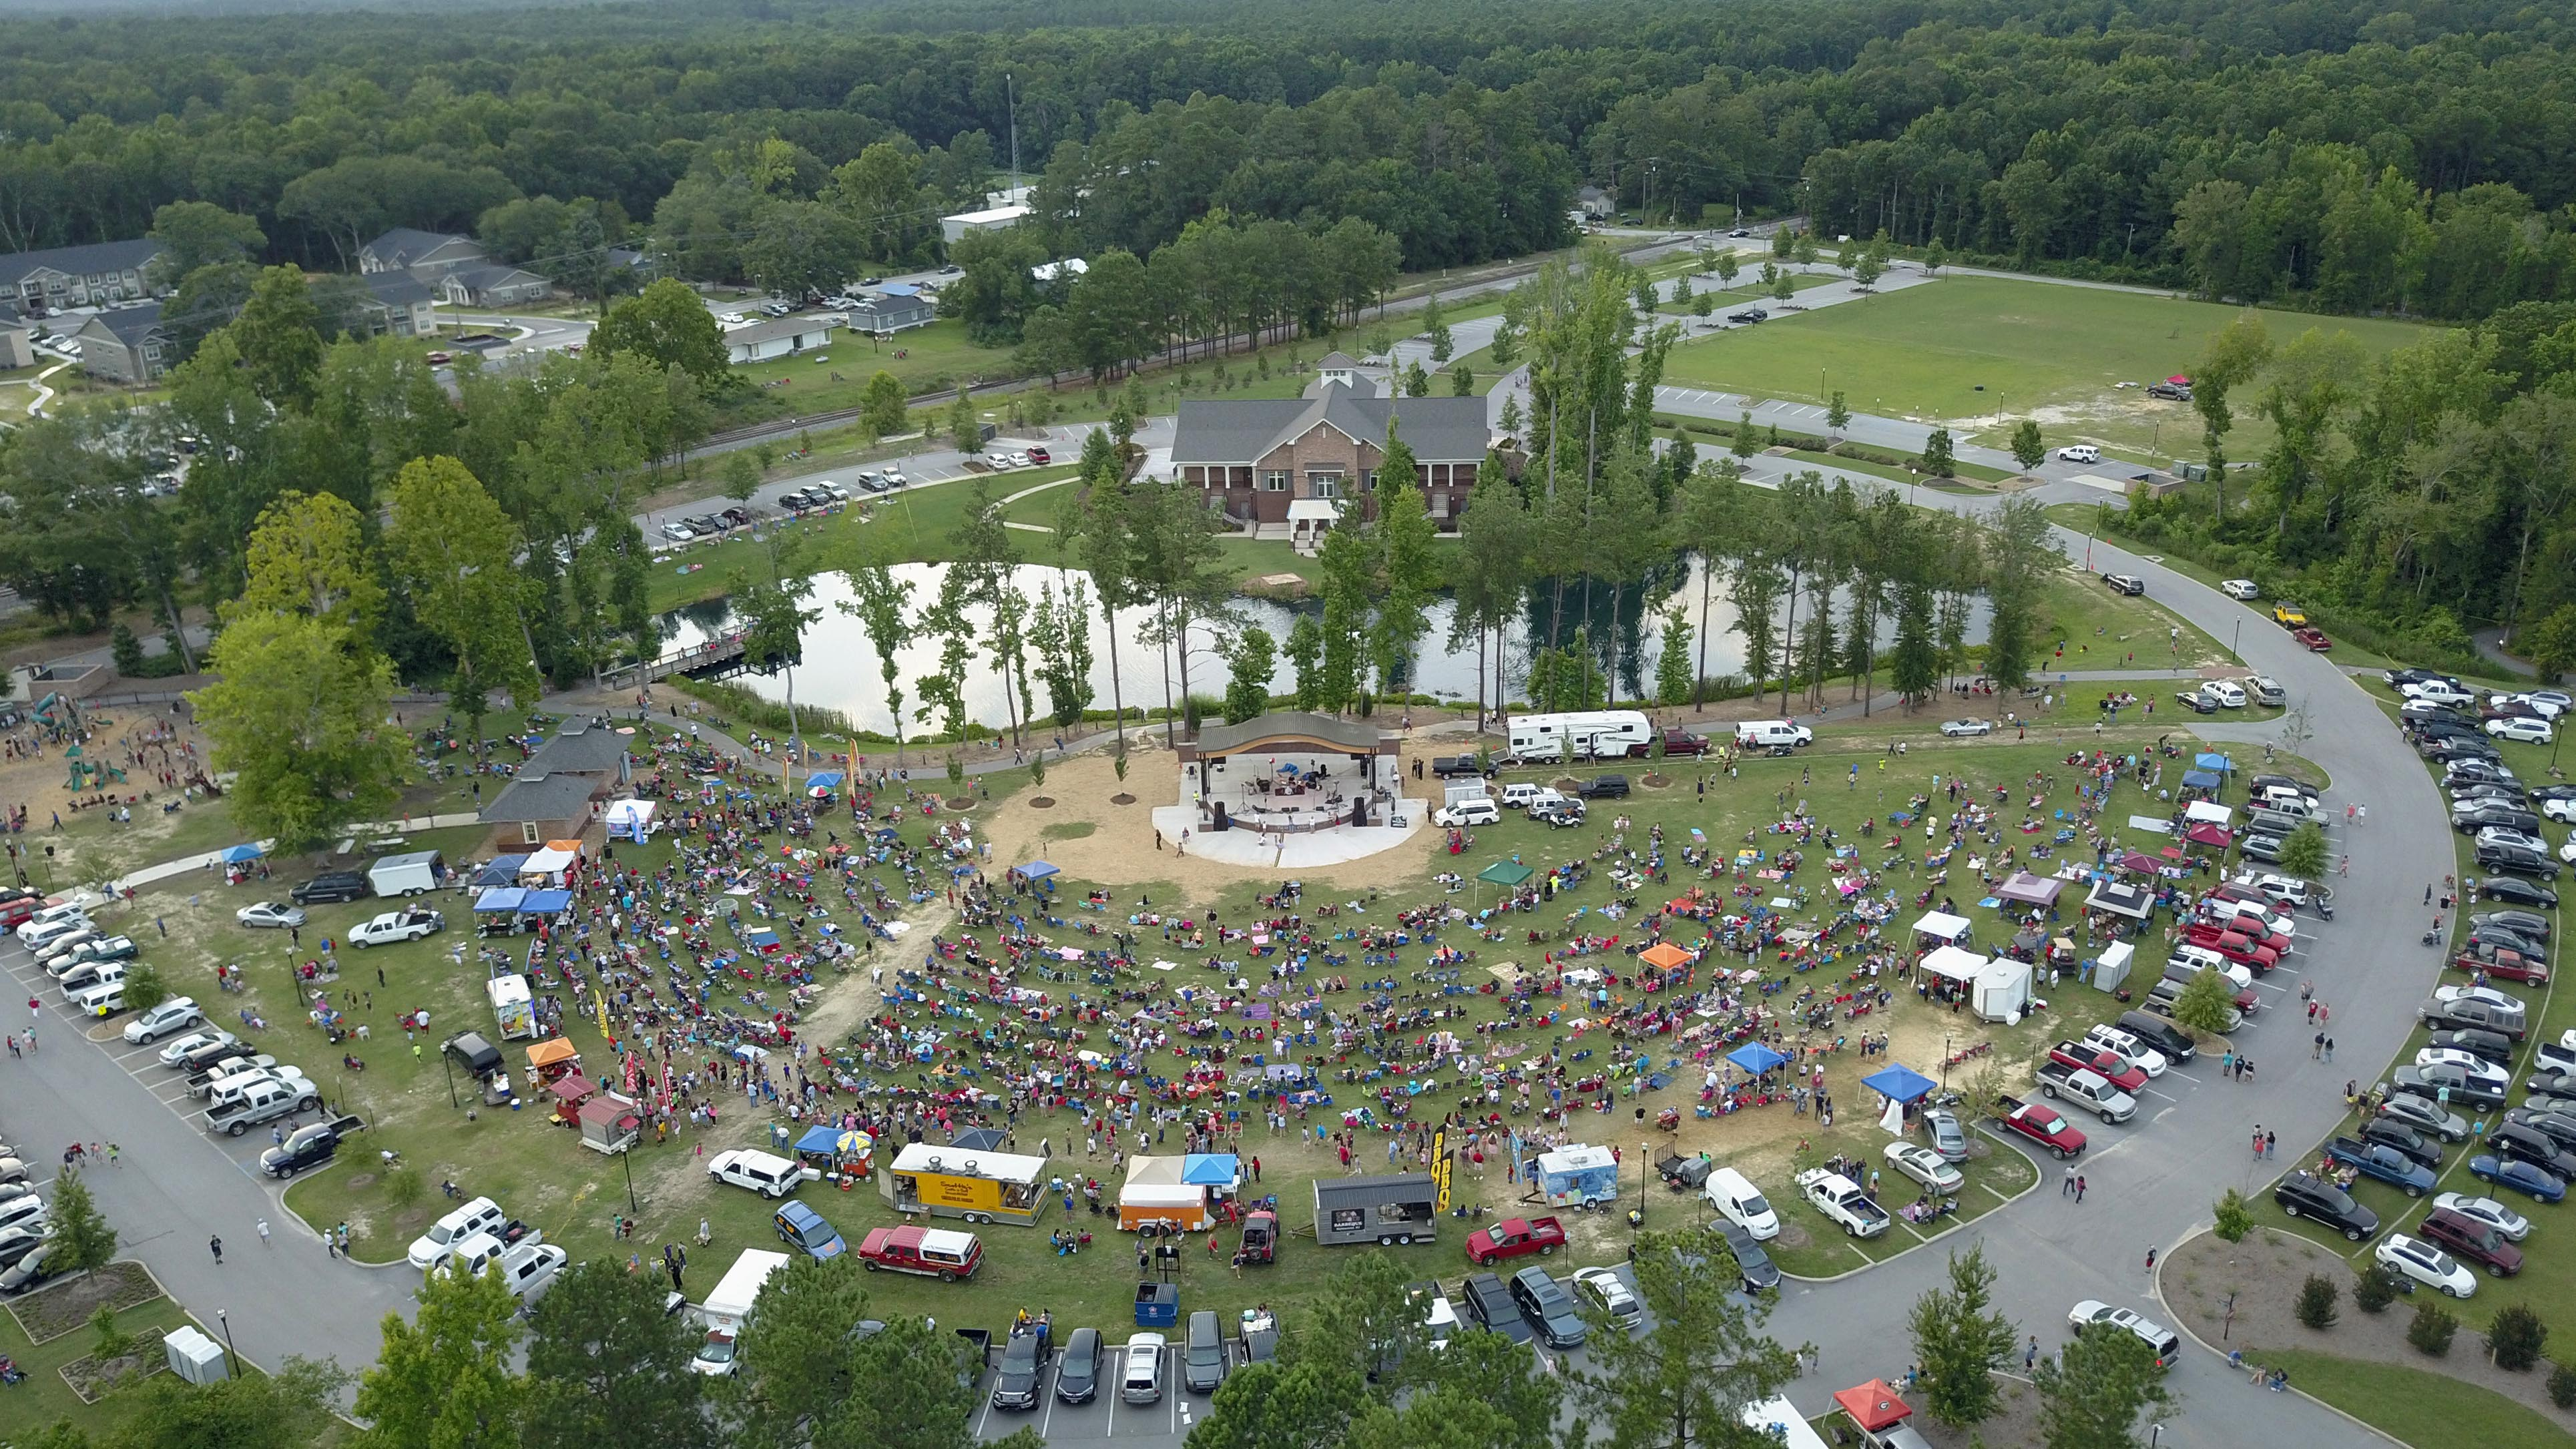 20170703-Aerial Amphitheater-2 Treetop Photography